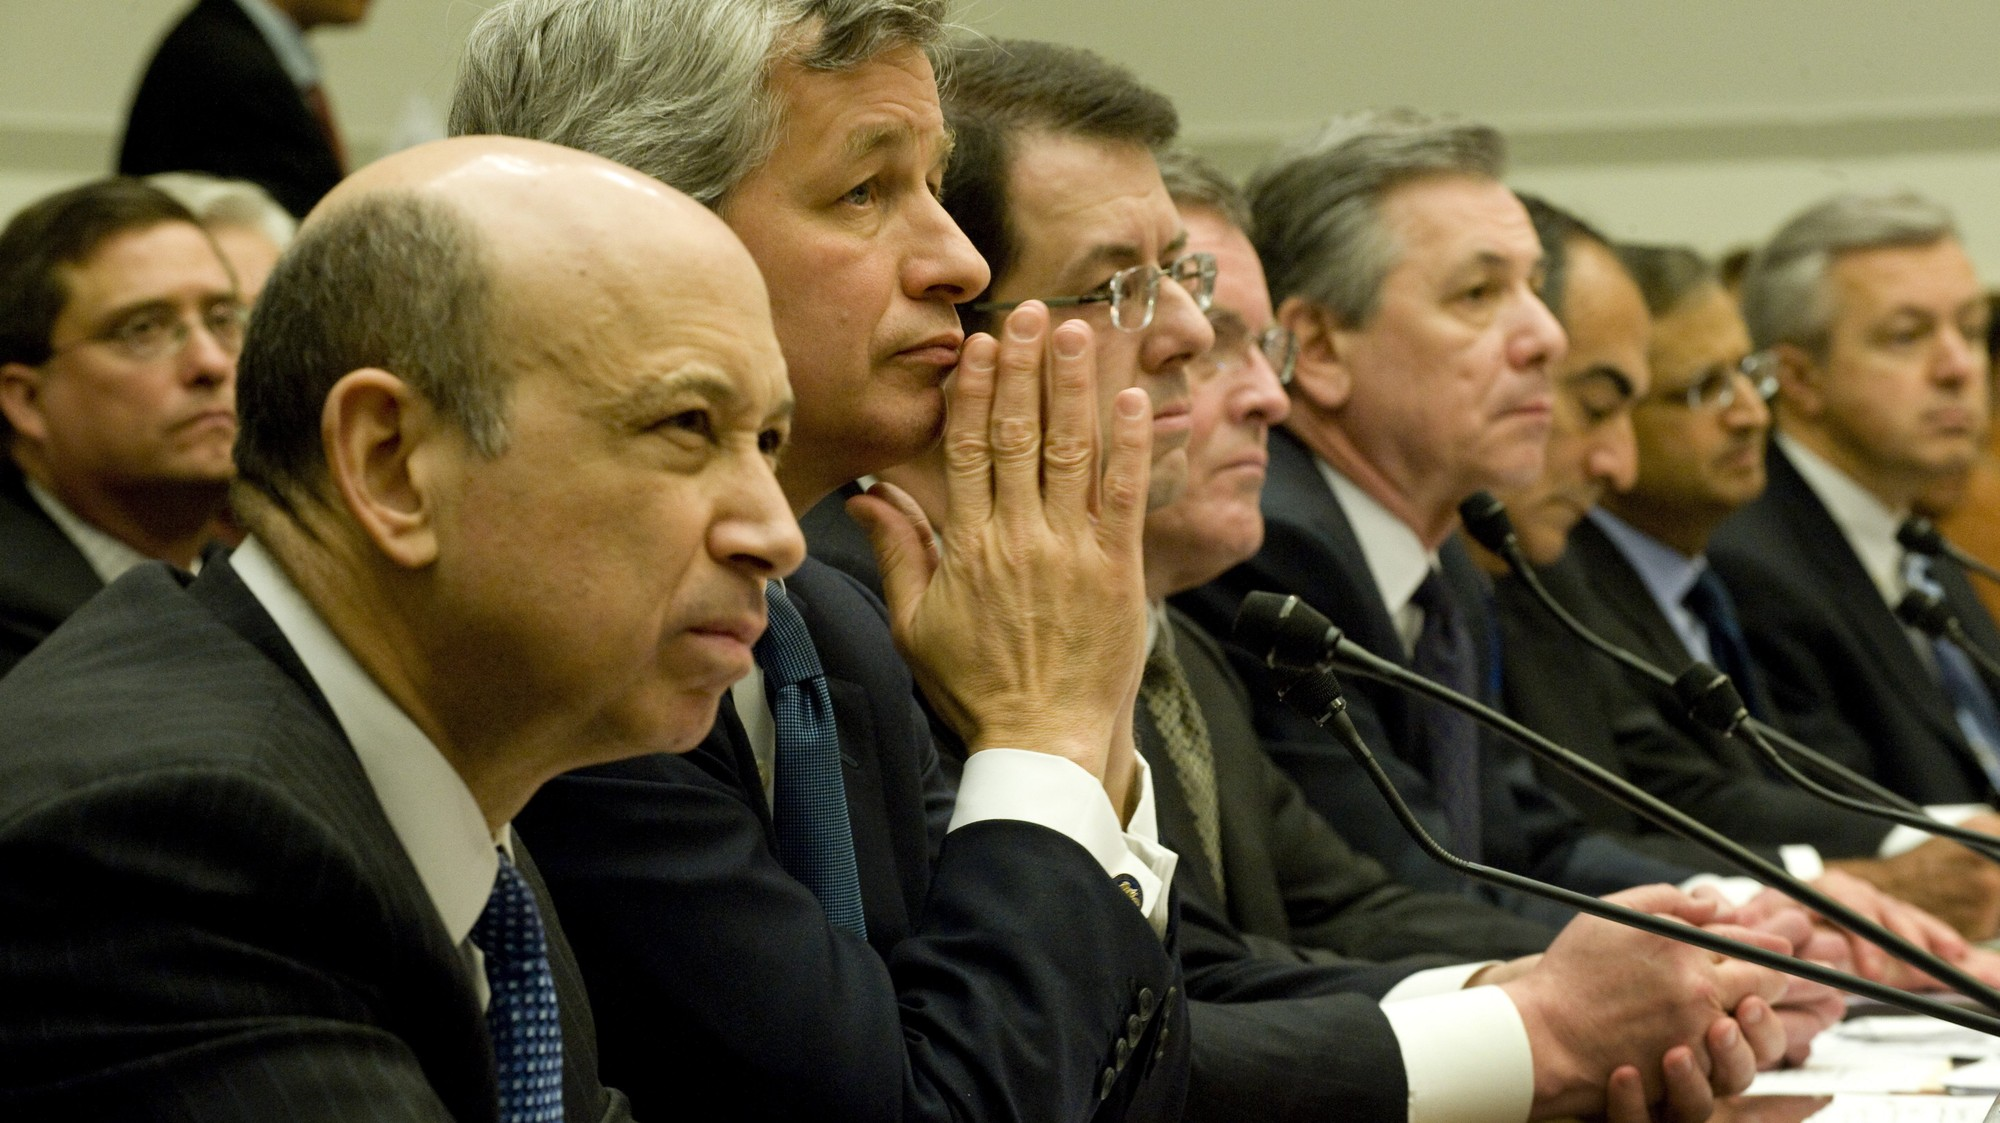 bankers getting their bailouts